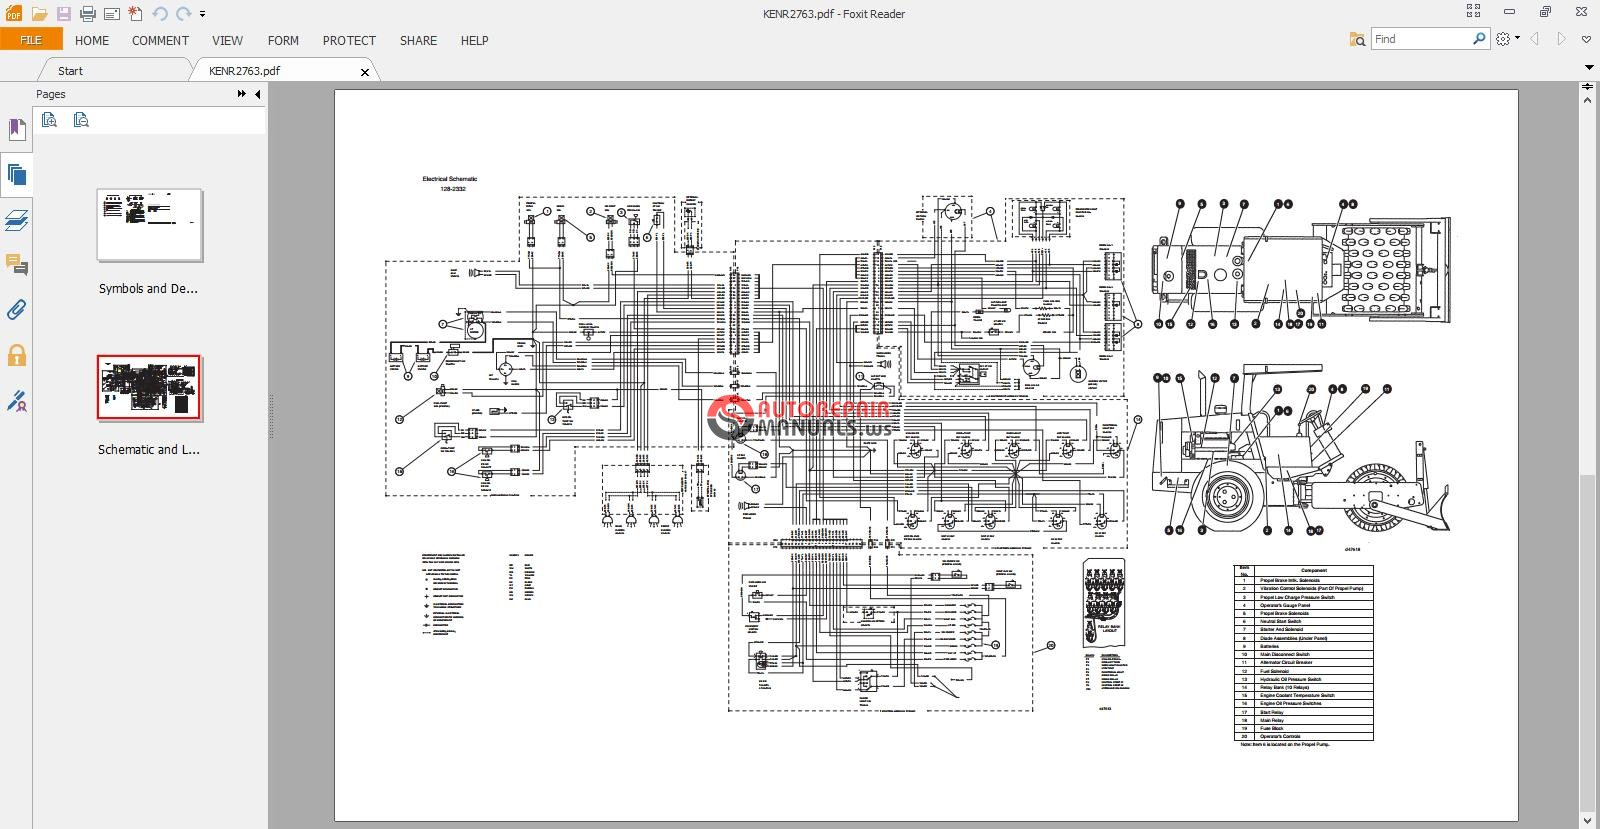 c15 wiring diagram with Cat Electrical Schematic on Engine Systems Diesel Engine Analyst Part 1 further Caterpillar Service Manual Schematic Parts Manual Operation And Maintenance Manual Full Dvd Part 2 likewise Caterpillar C10 C12 3176B 3406E Engine Wiring Diagram Schematic in addition Citroen Service Box P 8 furthermore P7100 Injection Pump Diagram.